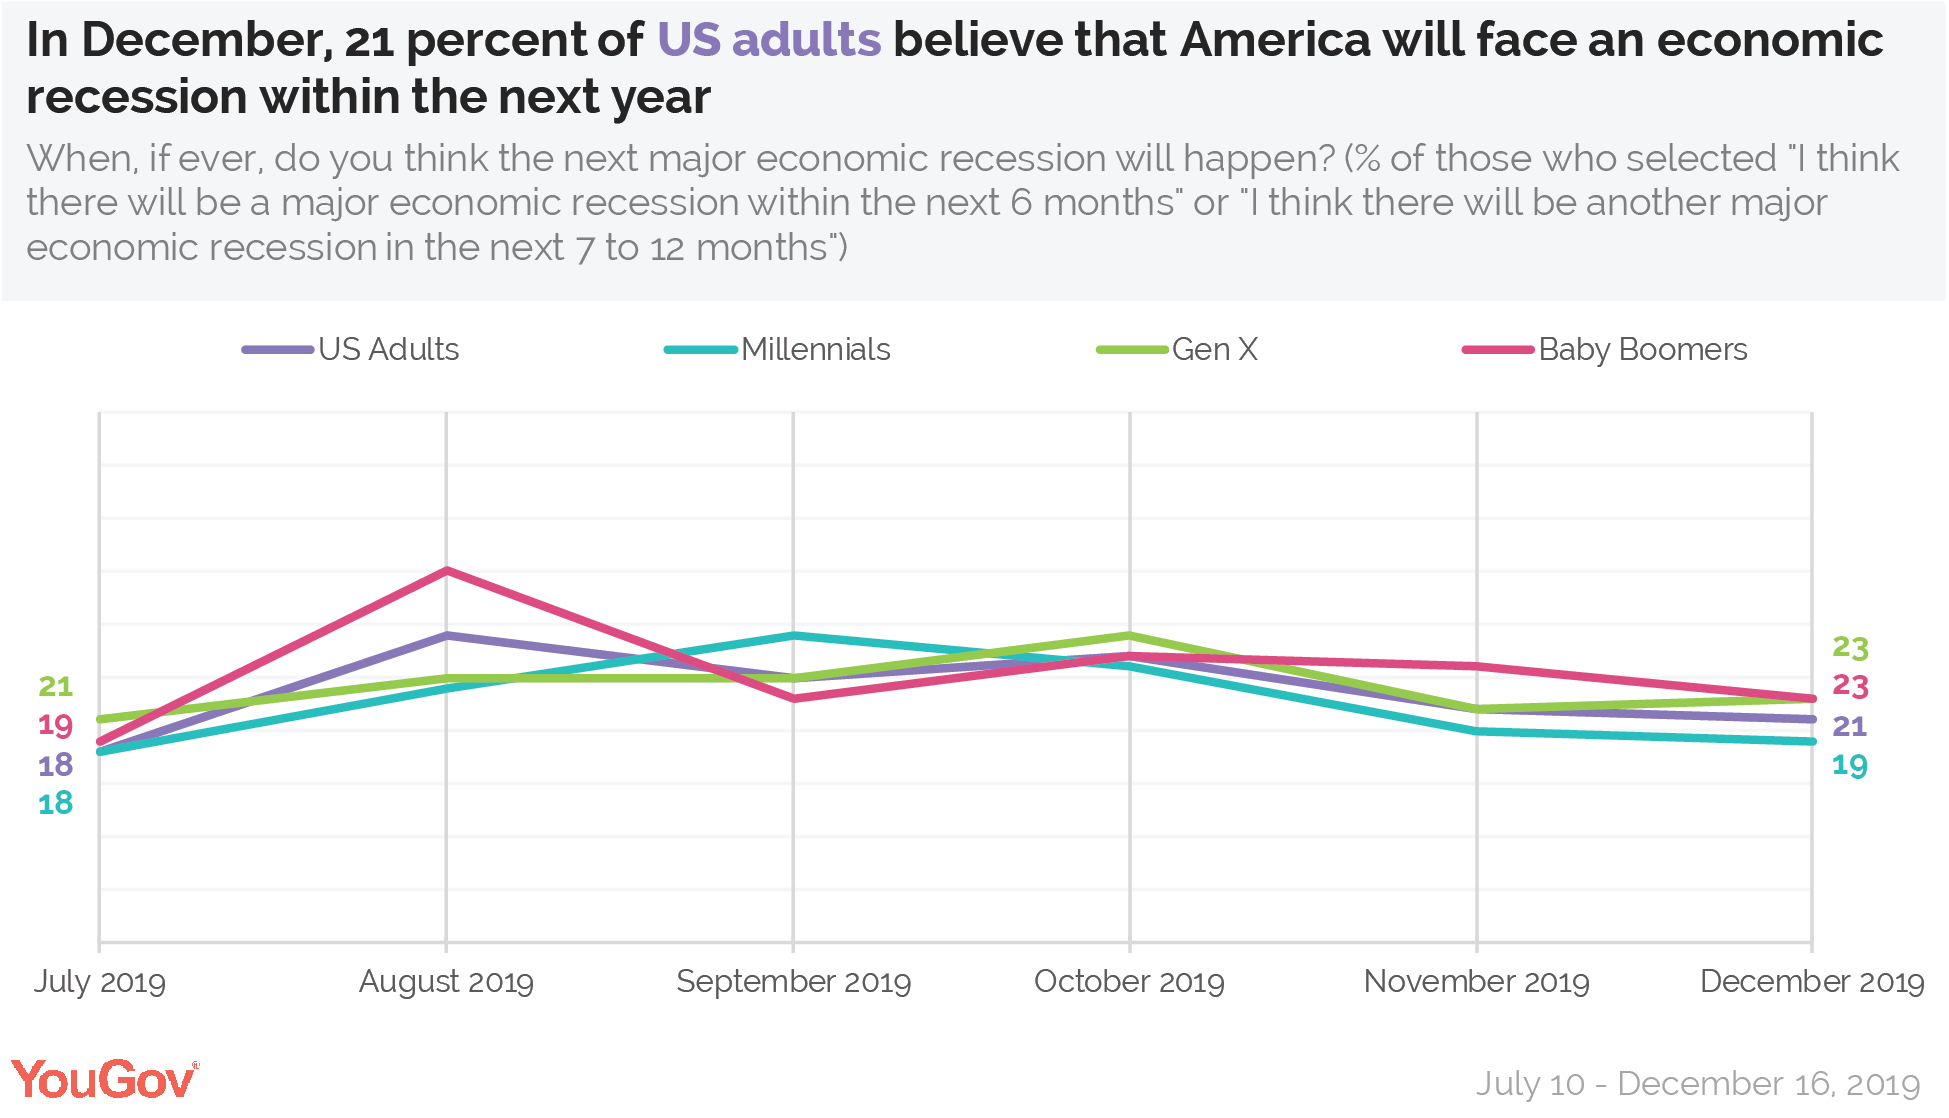 In Decemberm 21% of US adults believe that America will face an economic recession within the next year